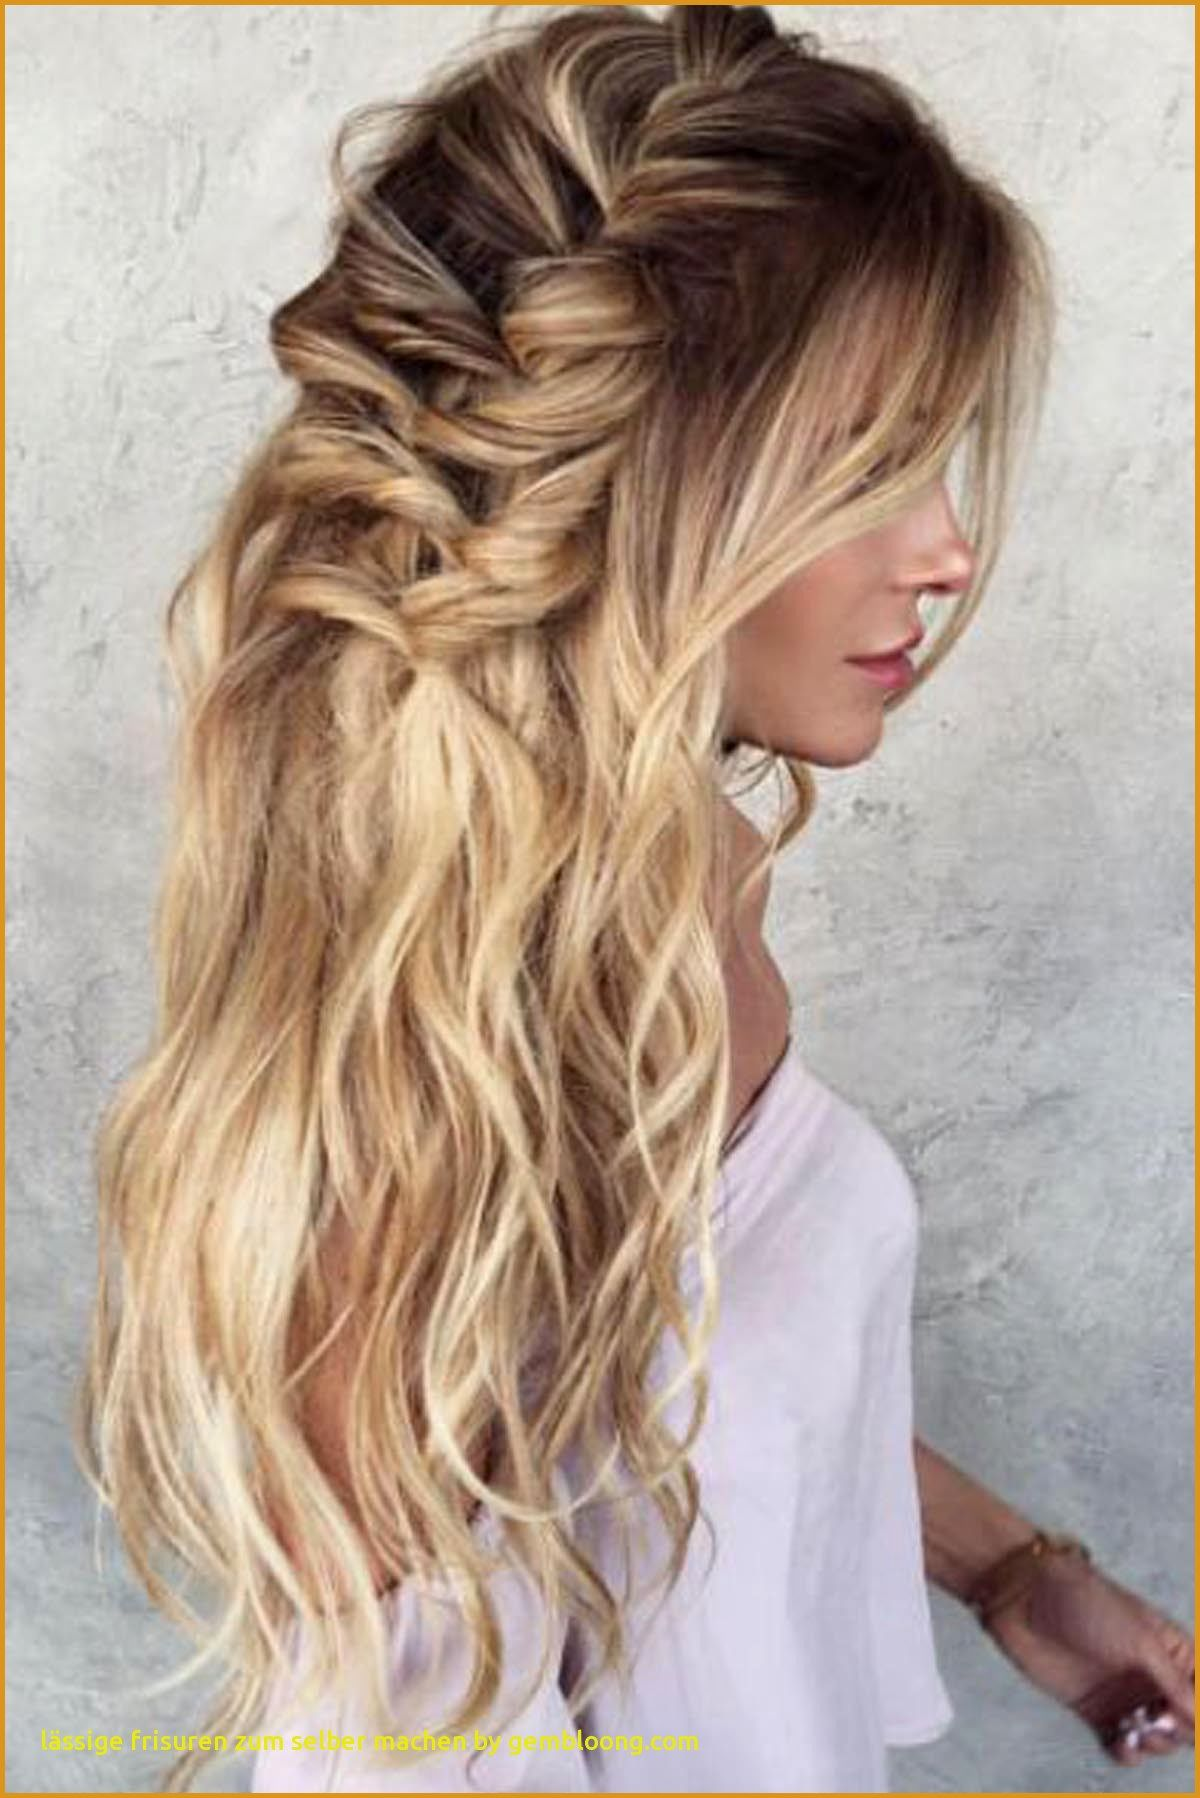 fascinating quick updos ideas-Fancy fast updo wall